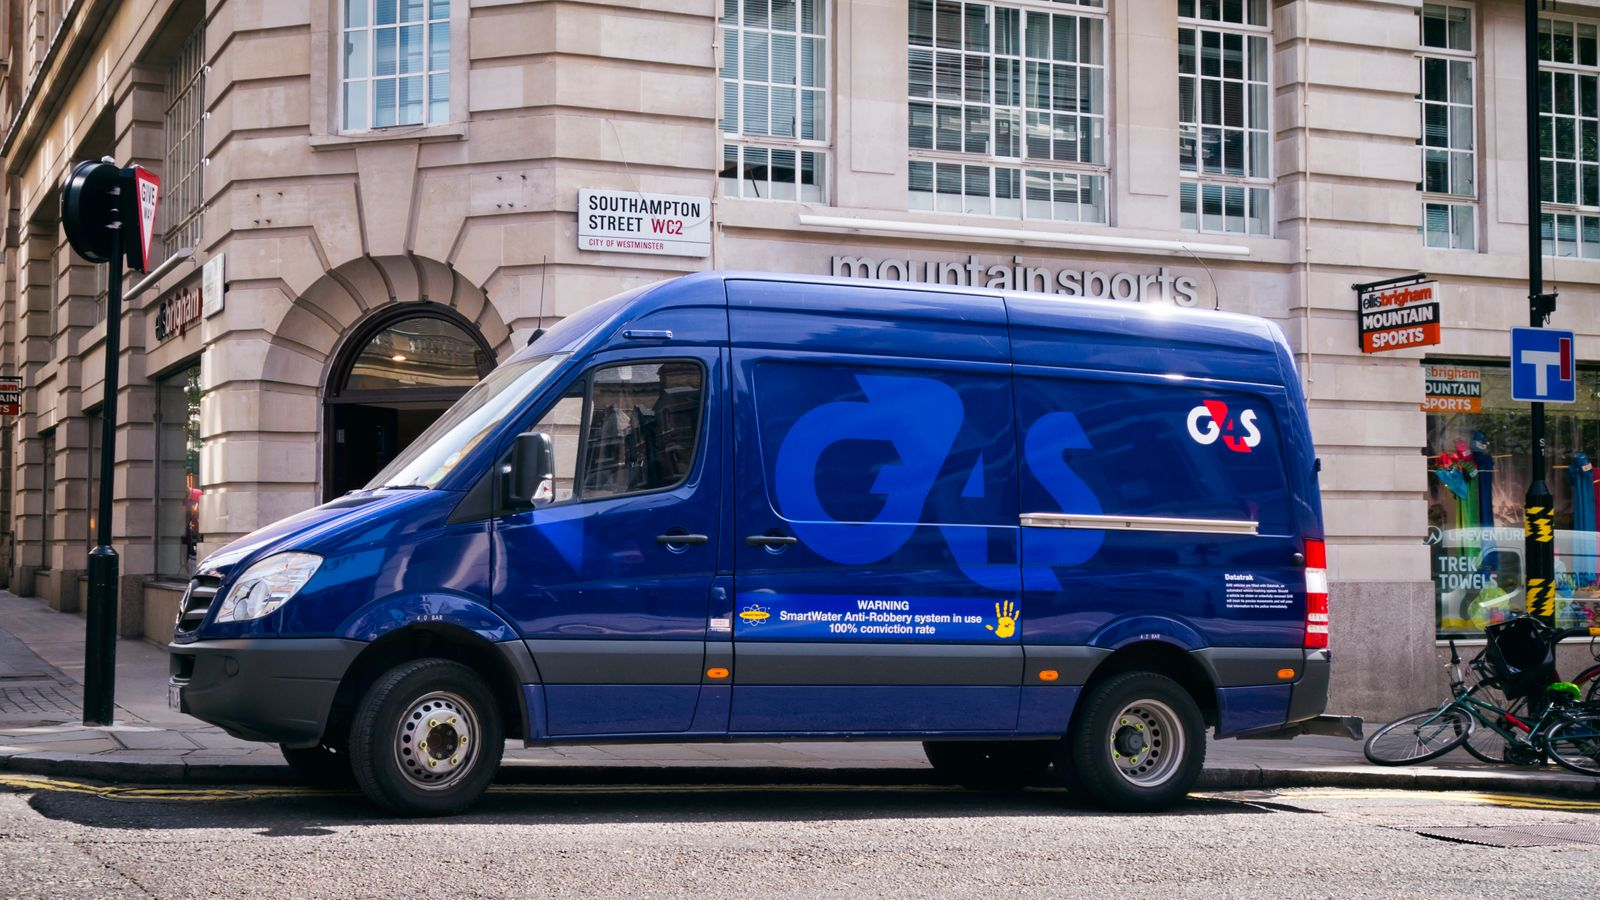 G4S to cut more than 1,100 jobs